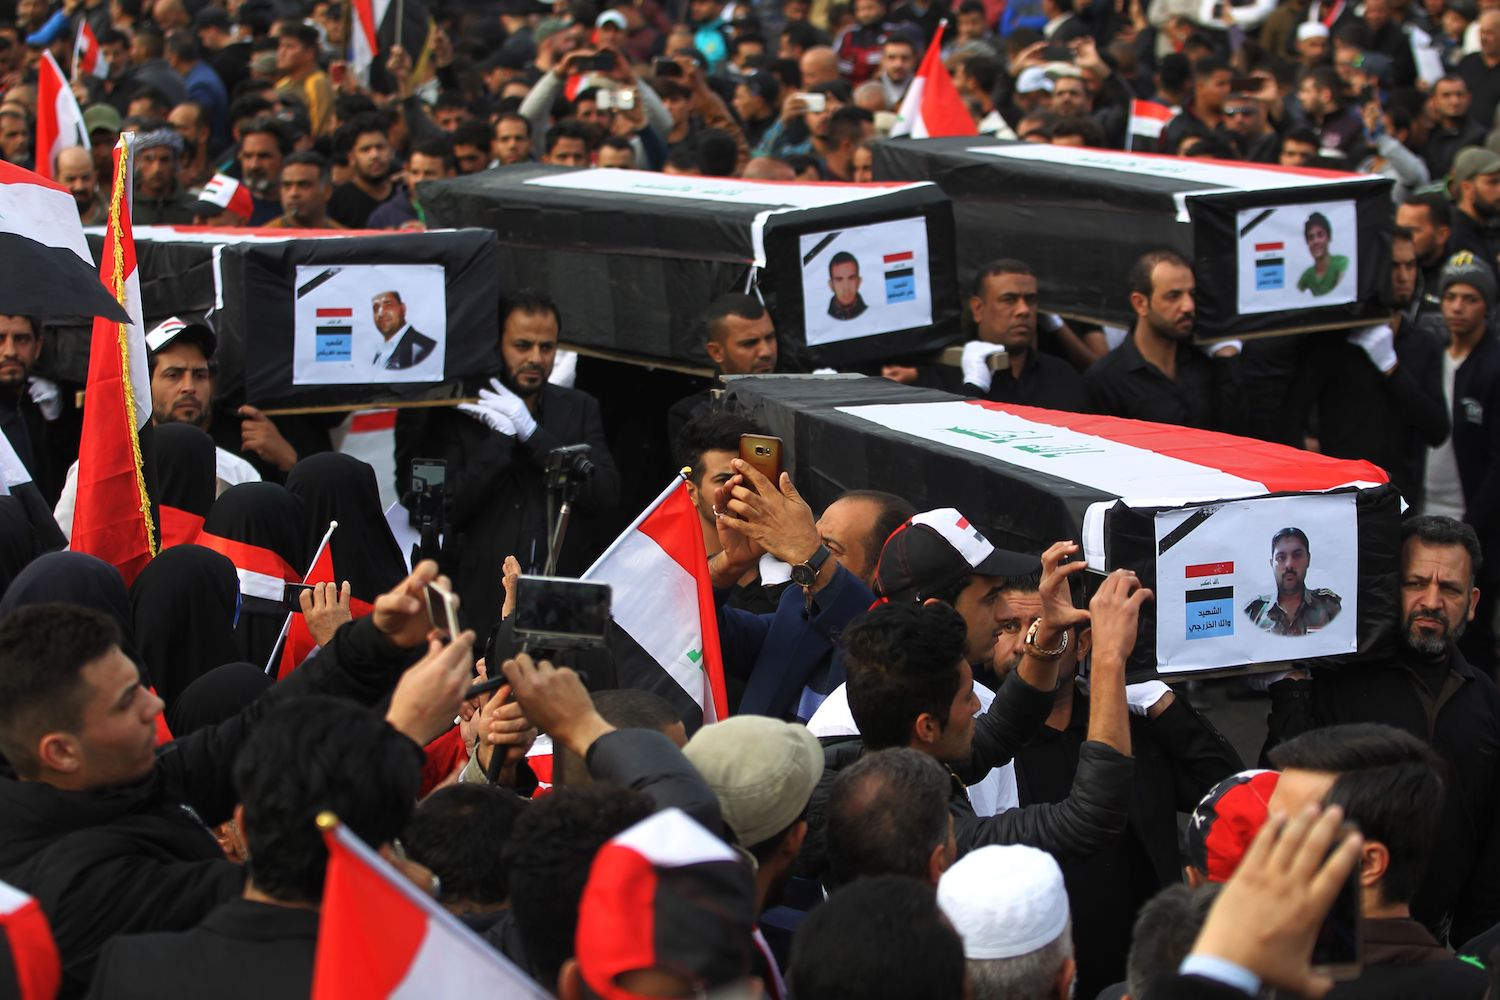 Iraqis carry mock coffins for those who were killed during a protest for electoral reform on February 11, 2017, as they march during a protest in Baghdad's Tahrir Square, on February 9, 2018. A year ago thousands of Sadr supporters and other Iraqis staged a demonstration demanding the country's election commissioners be replaced and the electoral law overhauled. The protest turned violent when some demonstrators tried to force their way through a security cordon to head to the seat of the electoral commission in the heavily fortified Green Zone. / AFP PHOTO / AHMAD AL-RUBAYE        (Photo credit should read AHMAD AL-RUBAYE/AFP/Getty Images)